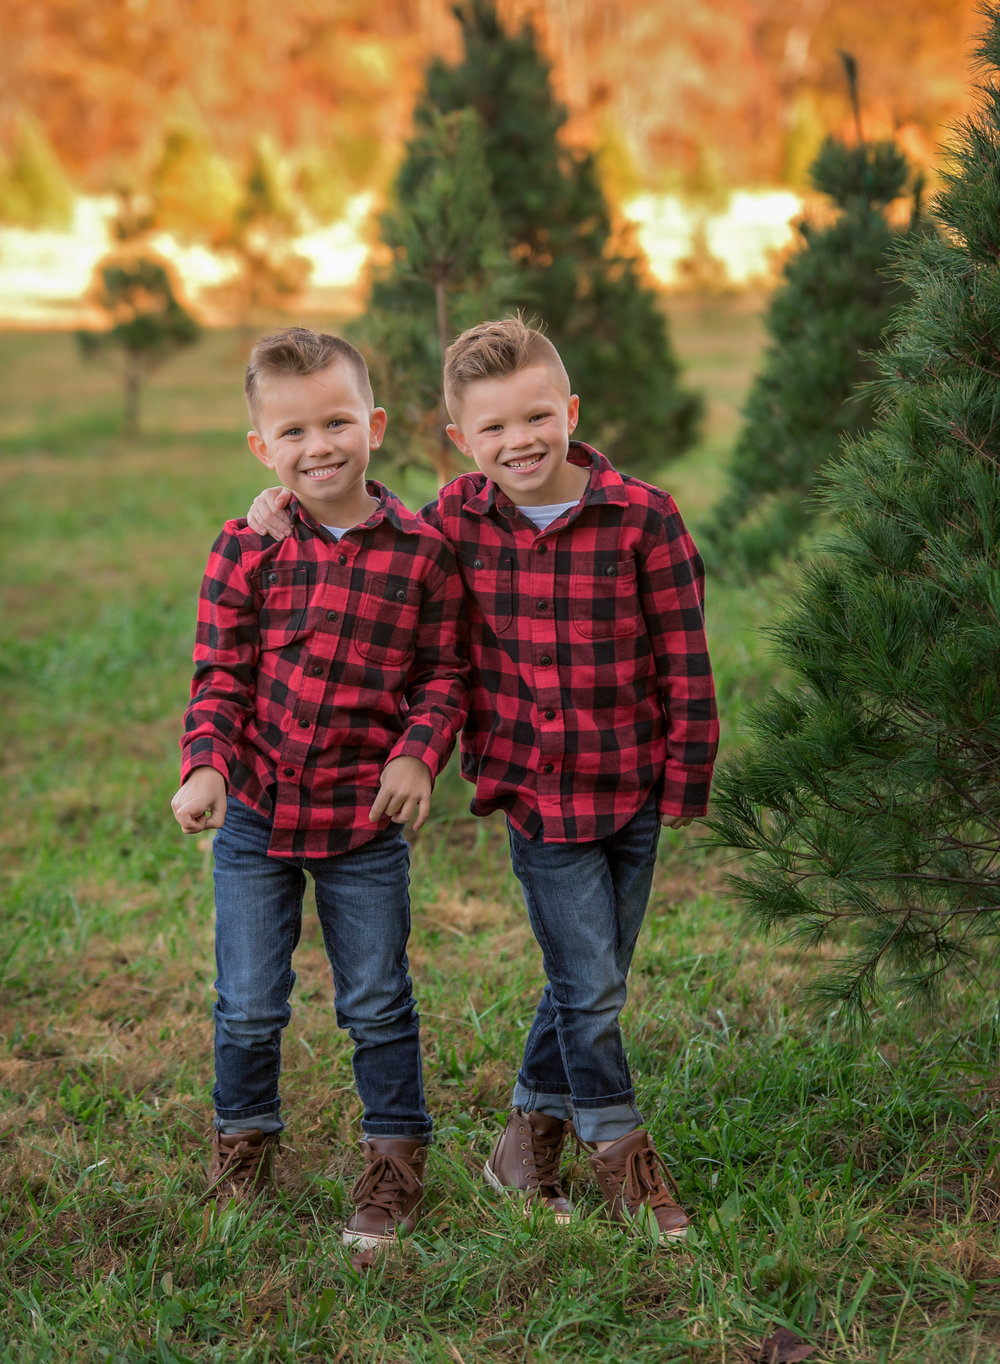 Brothers tree farm mini session windy knoll christmas tree farm henrico virginia holiday buffalo plaid